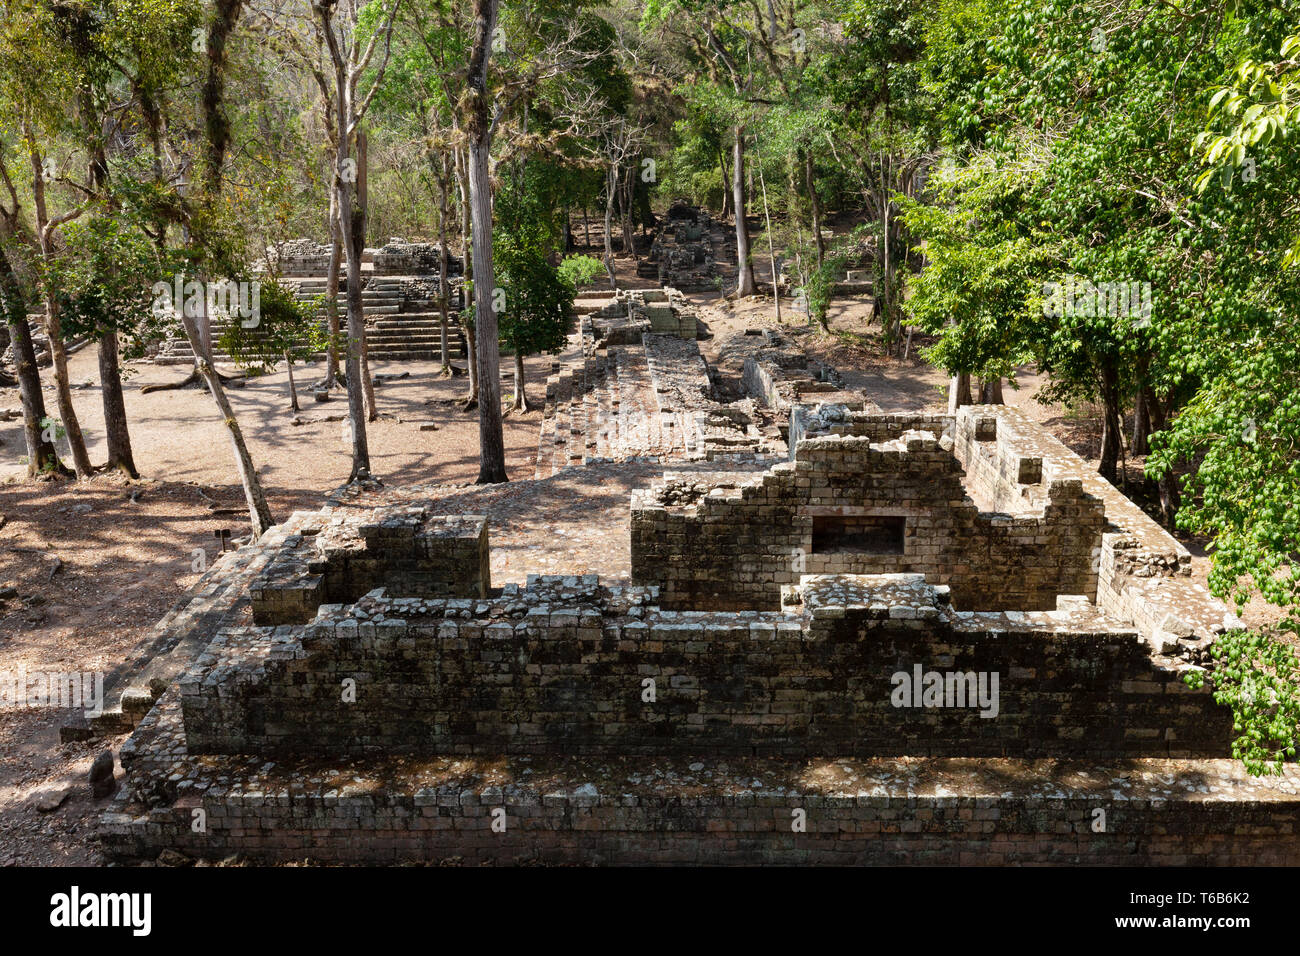 The Residential Courtyards;  ancient mayan ruins at Copan, Honduras Latin America Stock Photo